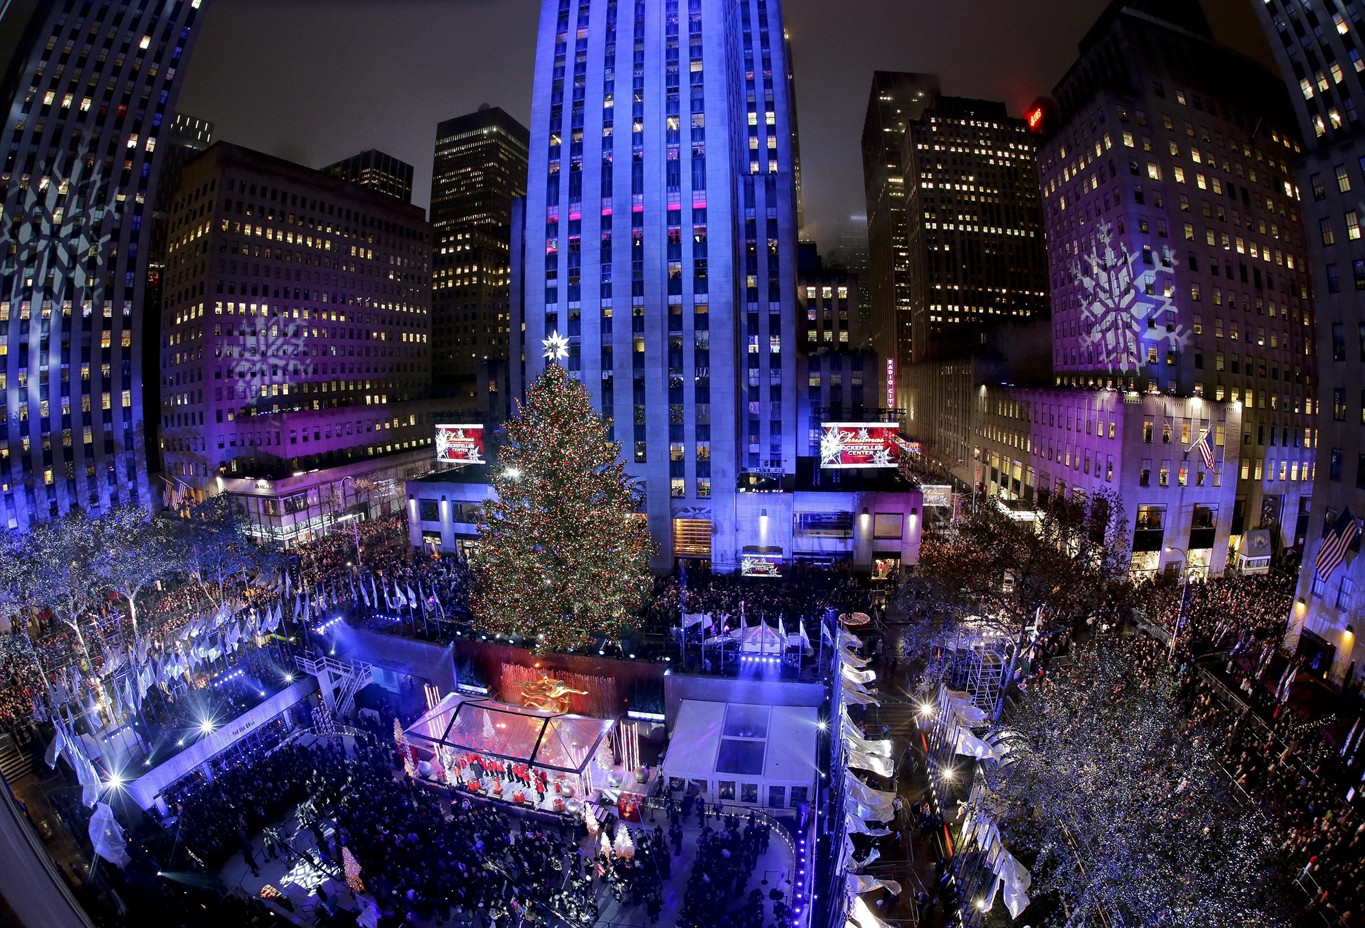 Thousands gather for NYC Rockefeller Center Christmas tree ...